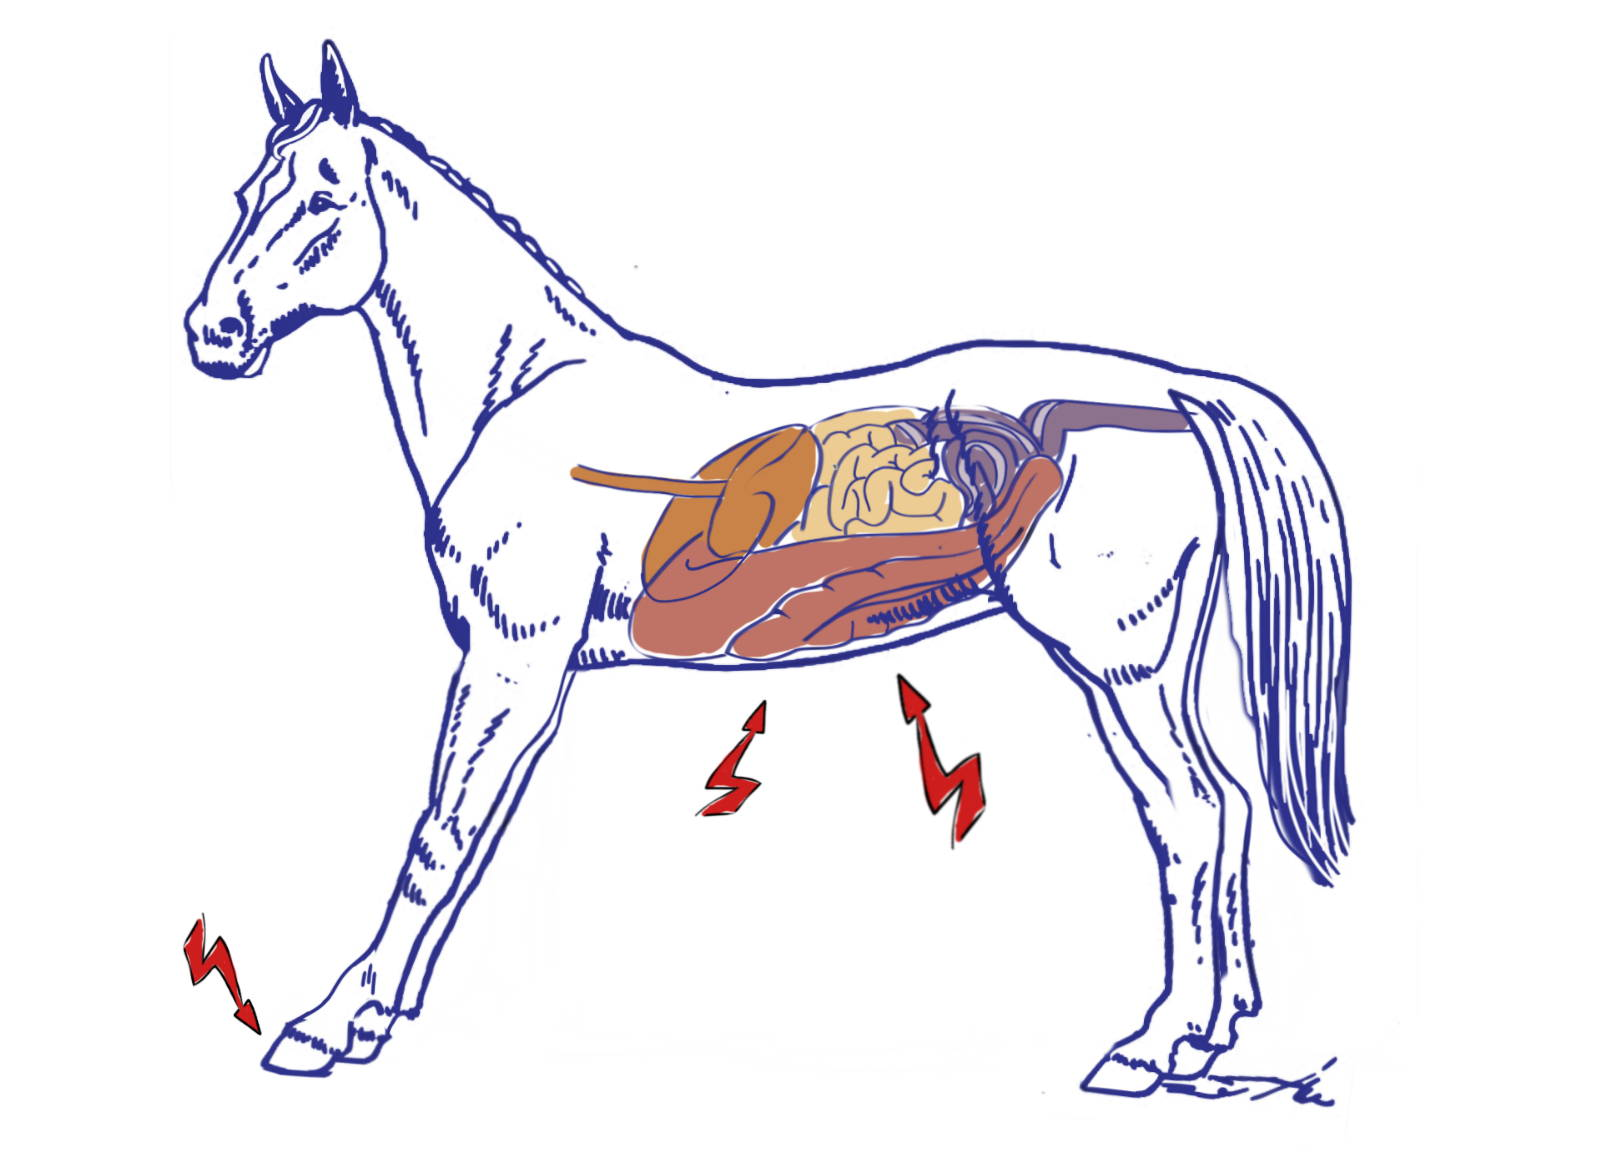 Drawing of a horse with a typical stance of laminitis